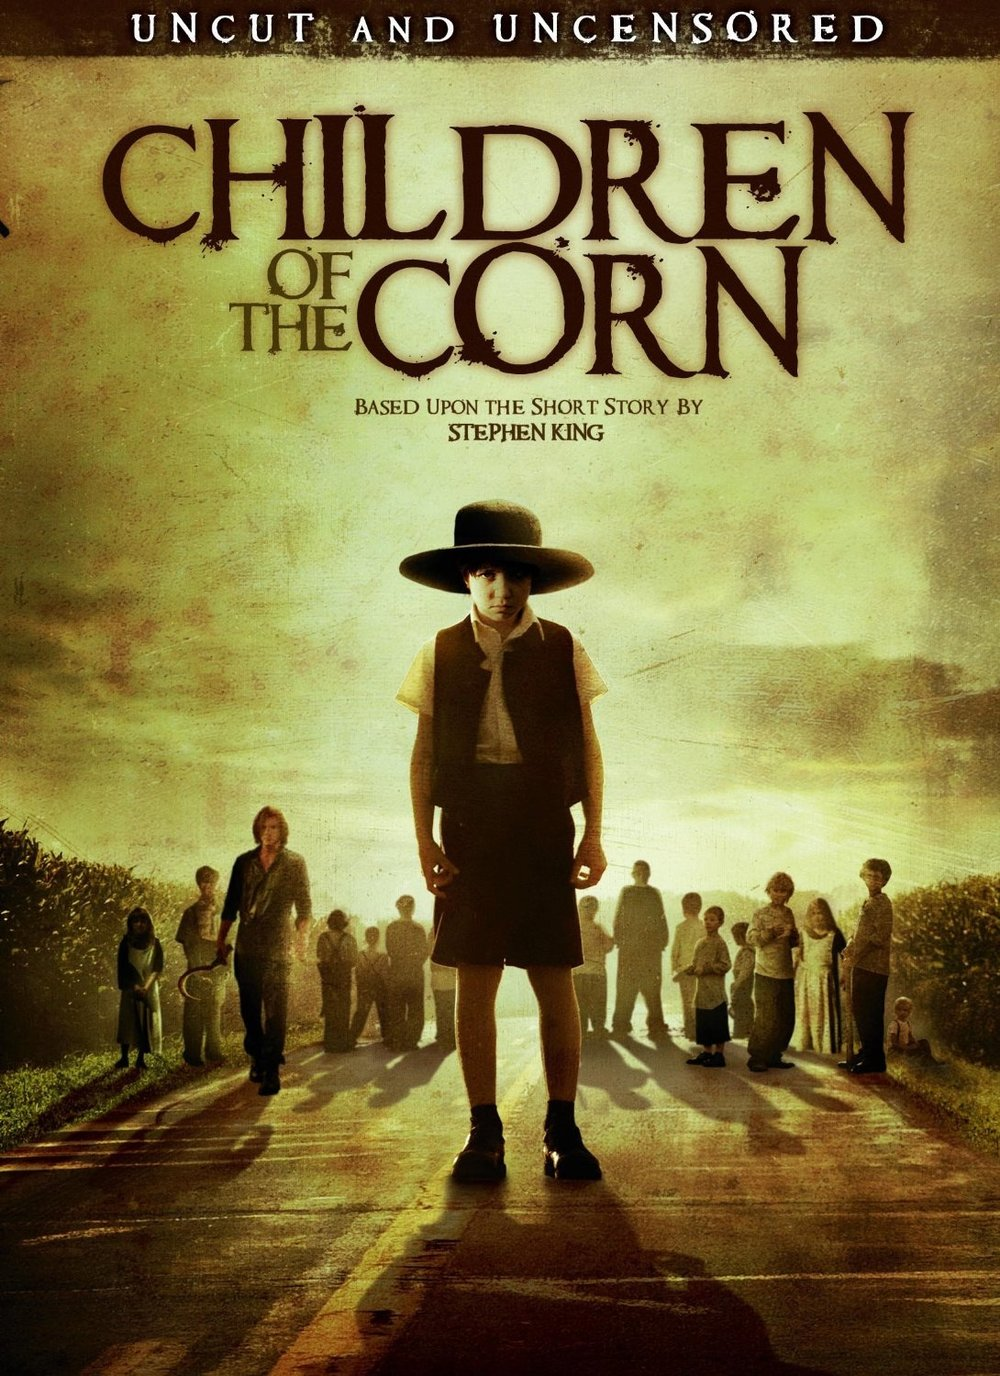 Children-of-the-Corn-2009-large.jpg